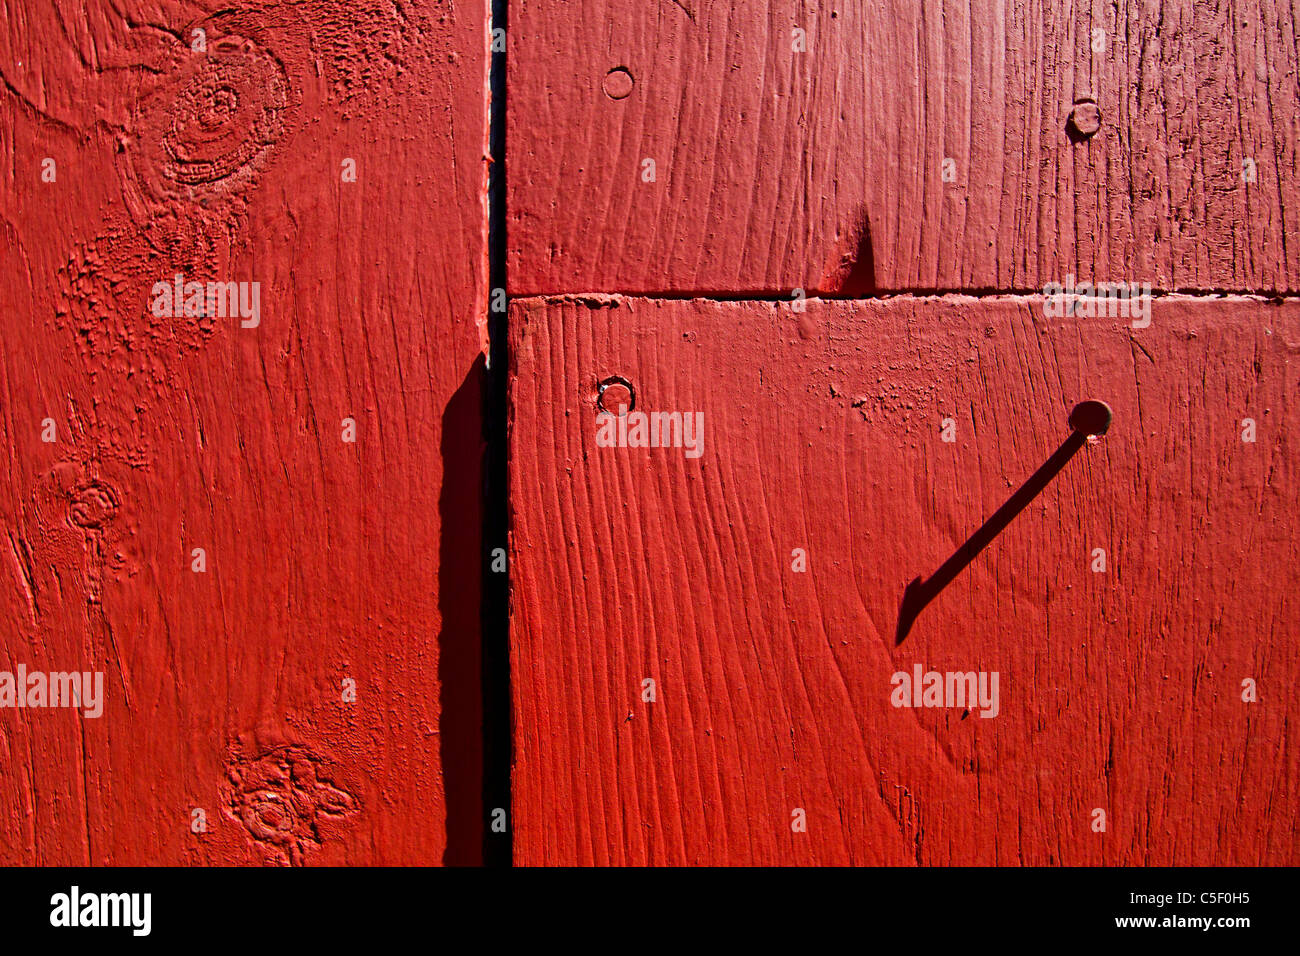 The shadow of a nail against painted red barn wood. - Stock Image